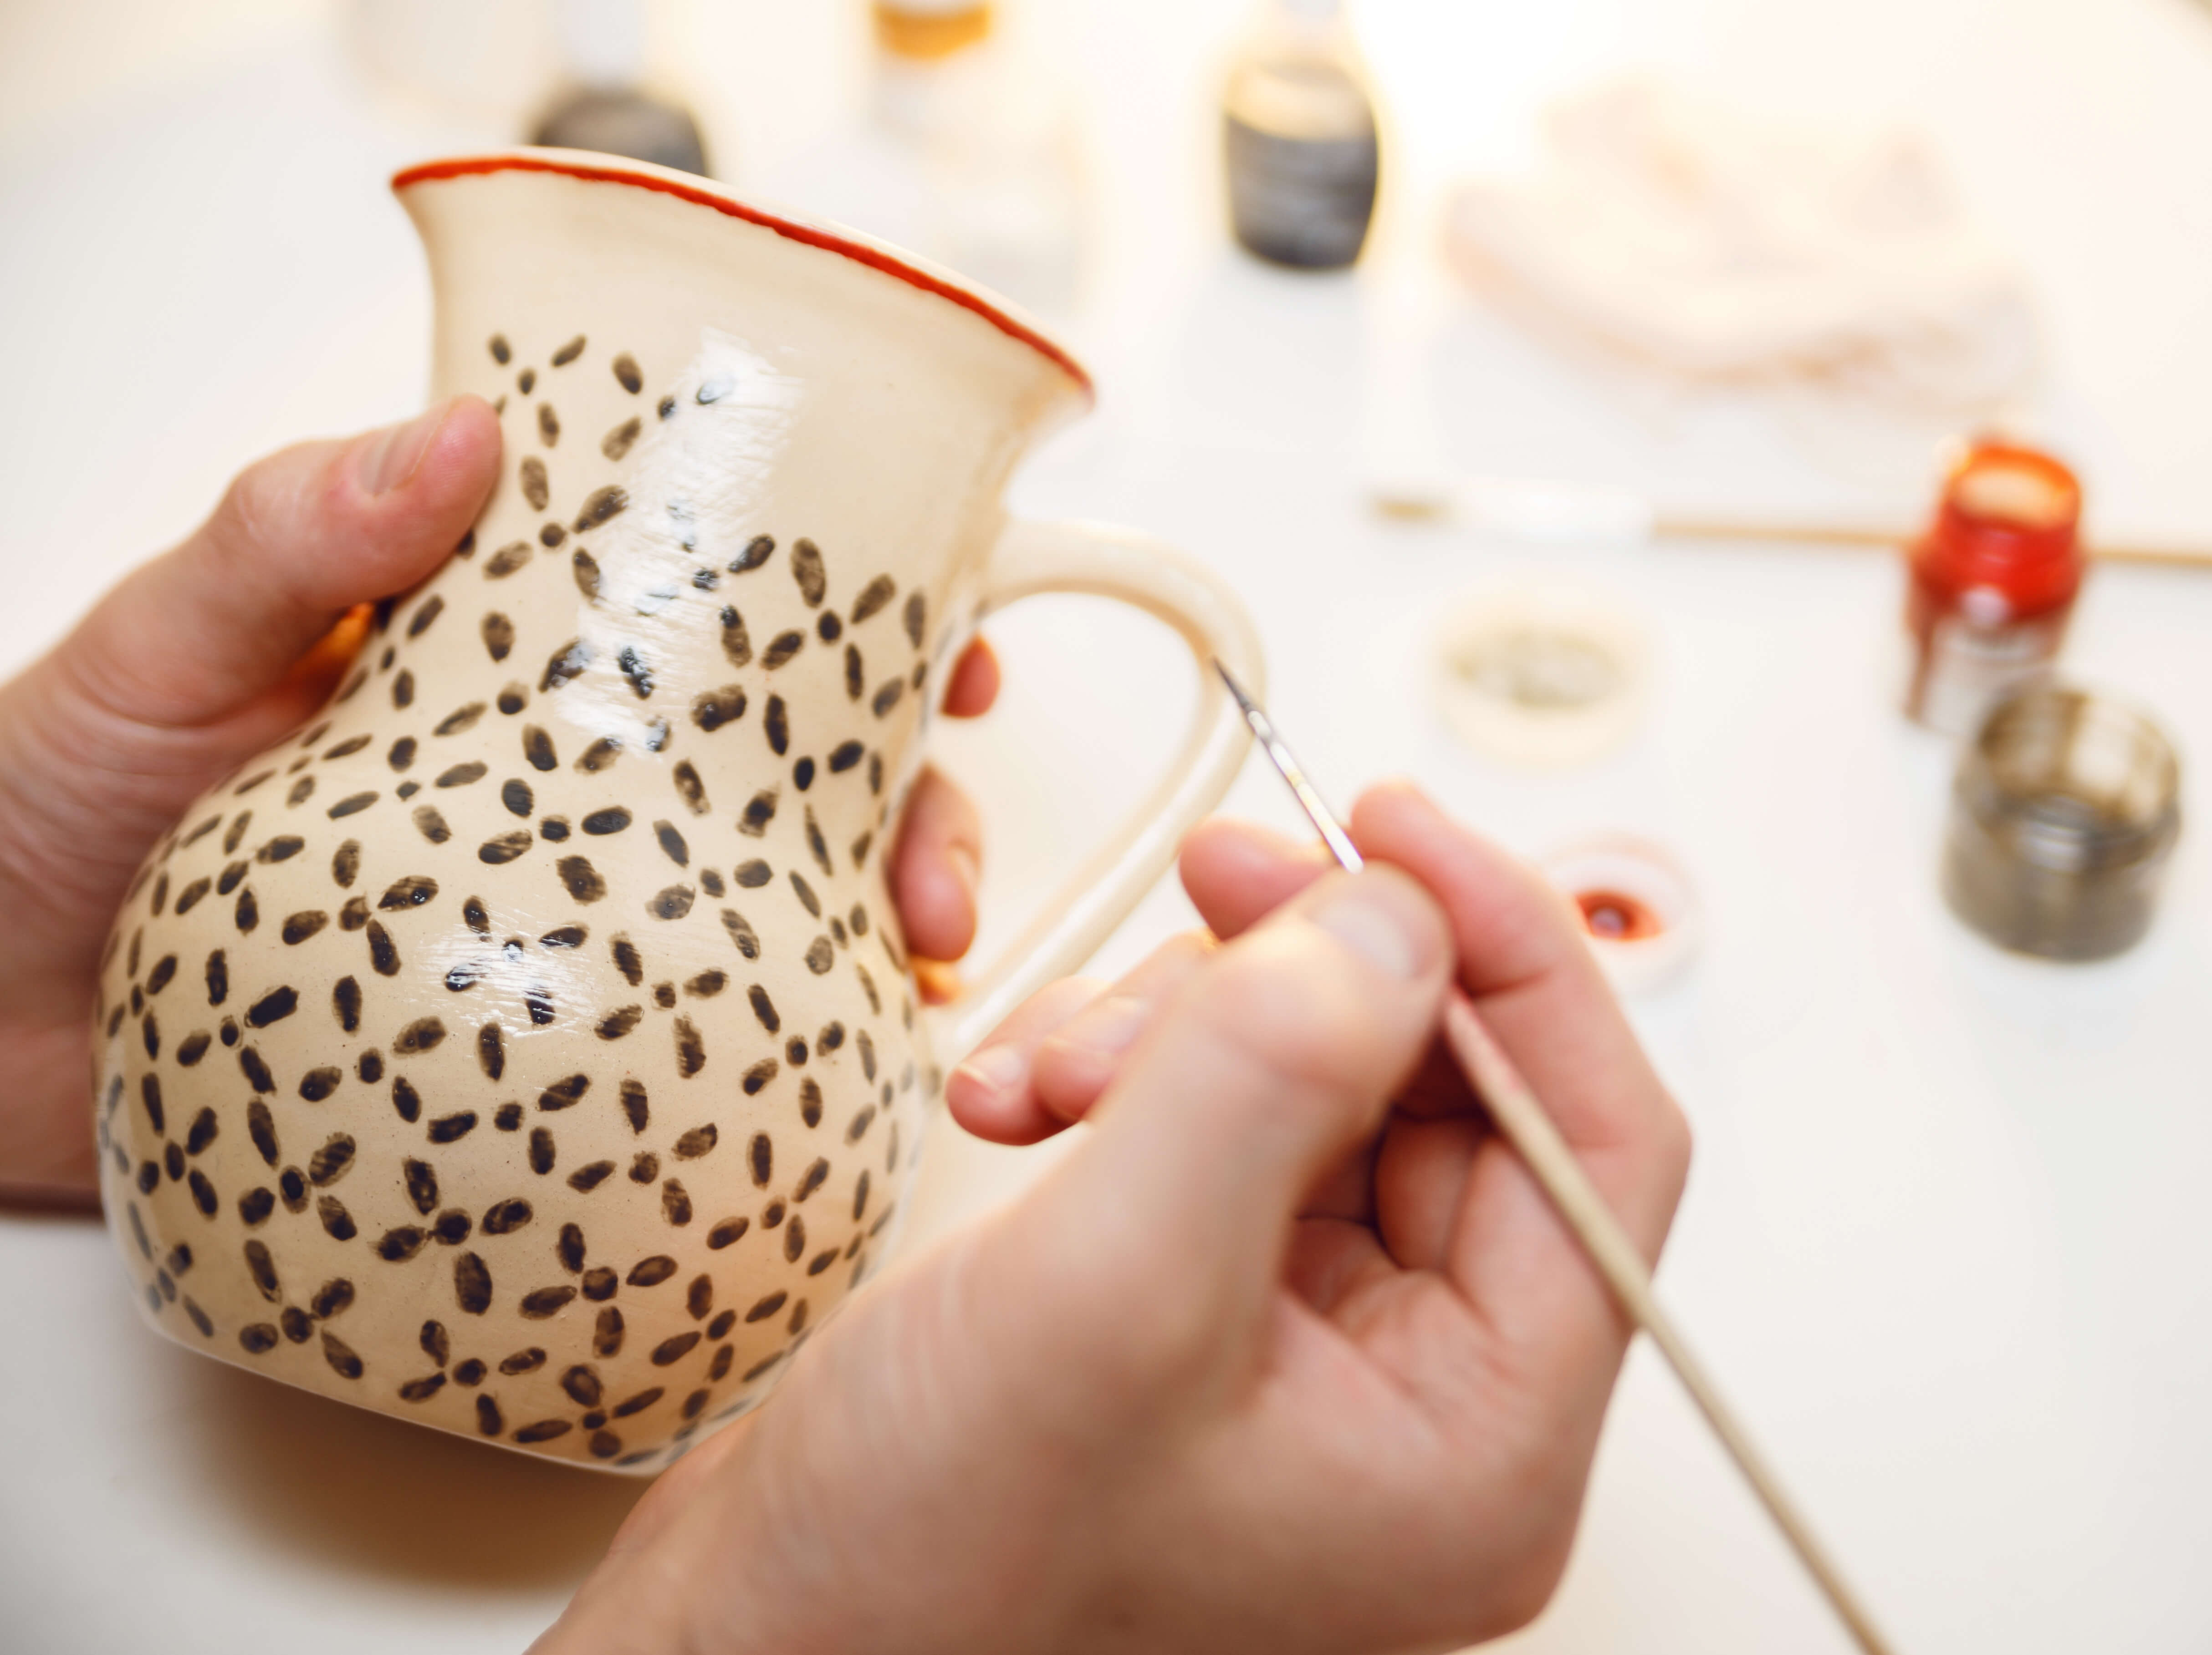 Starting an artisan pottery business